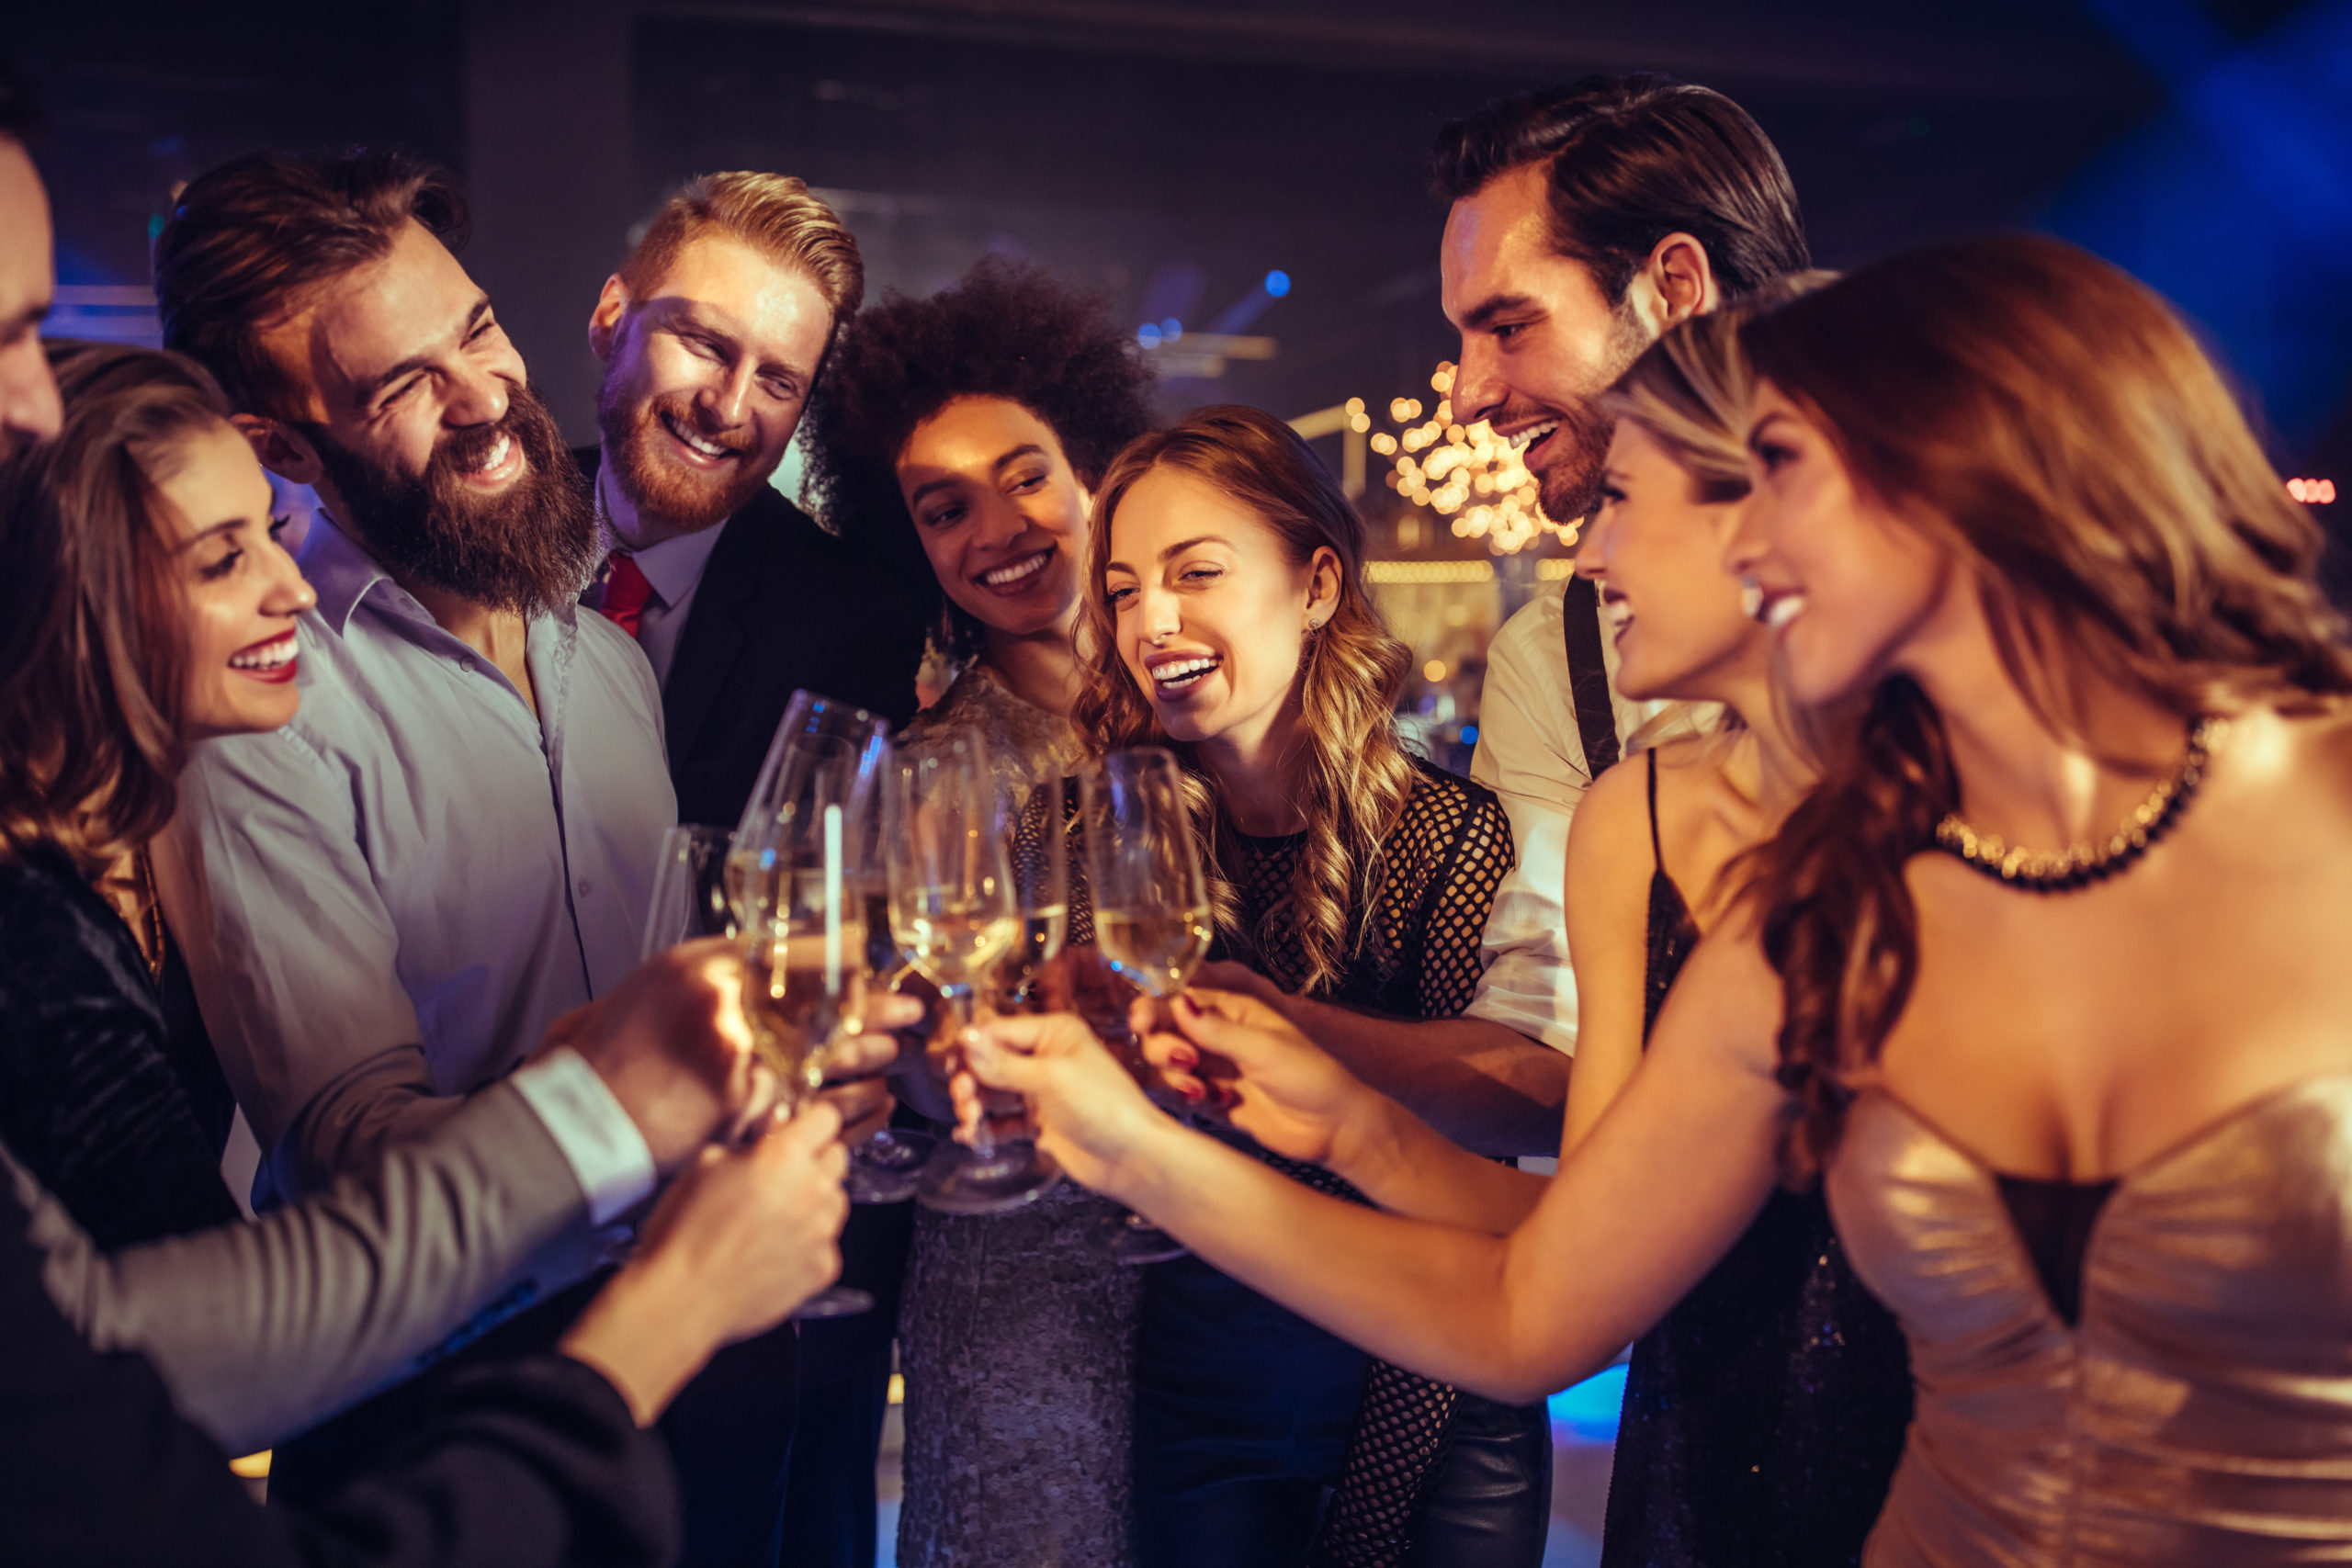 Group Of People Toasting Glasses